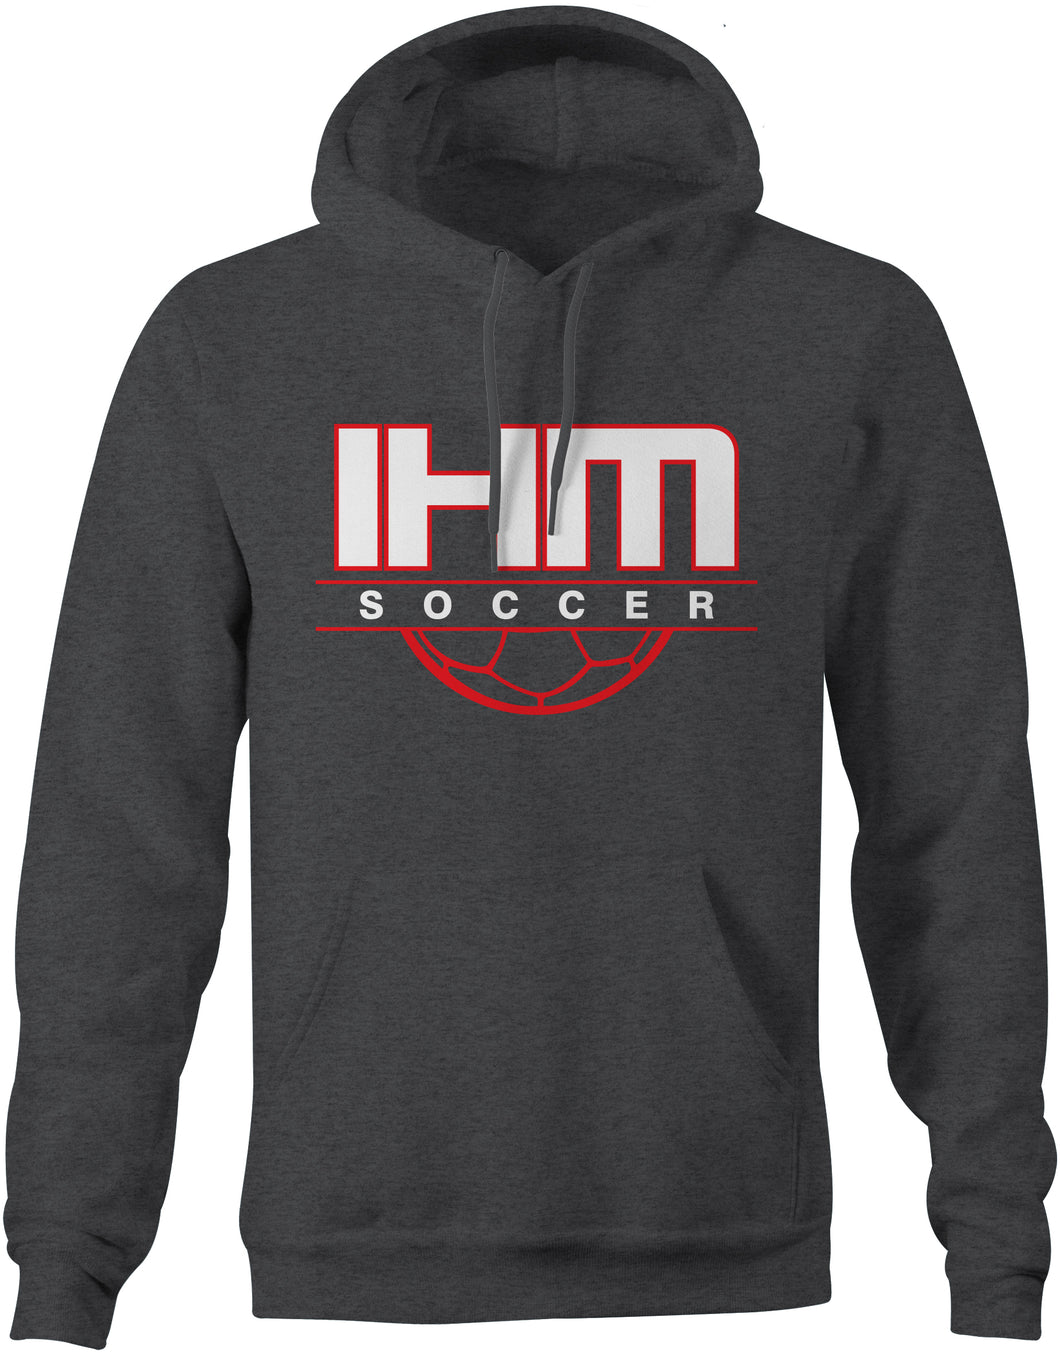 Dark Heather Soccer Cotton Hoodie